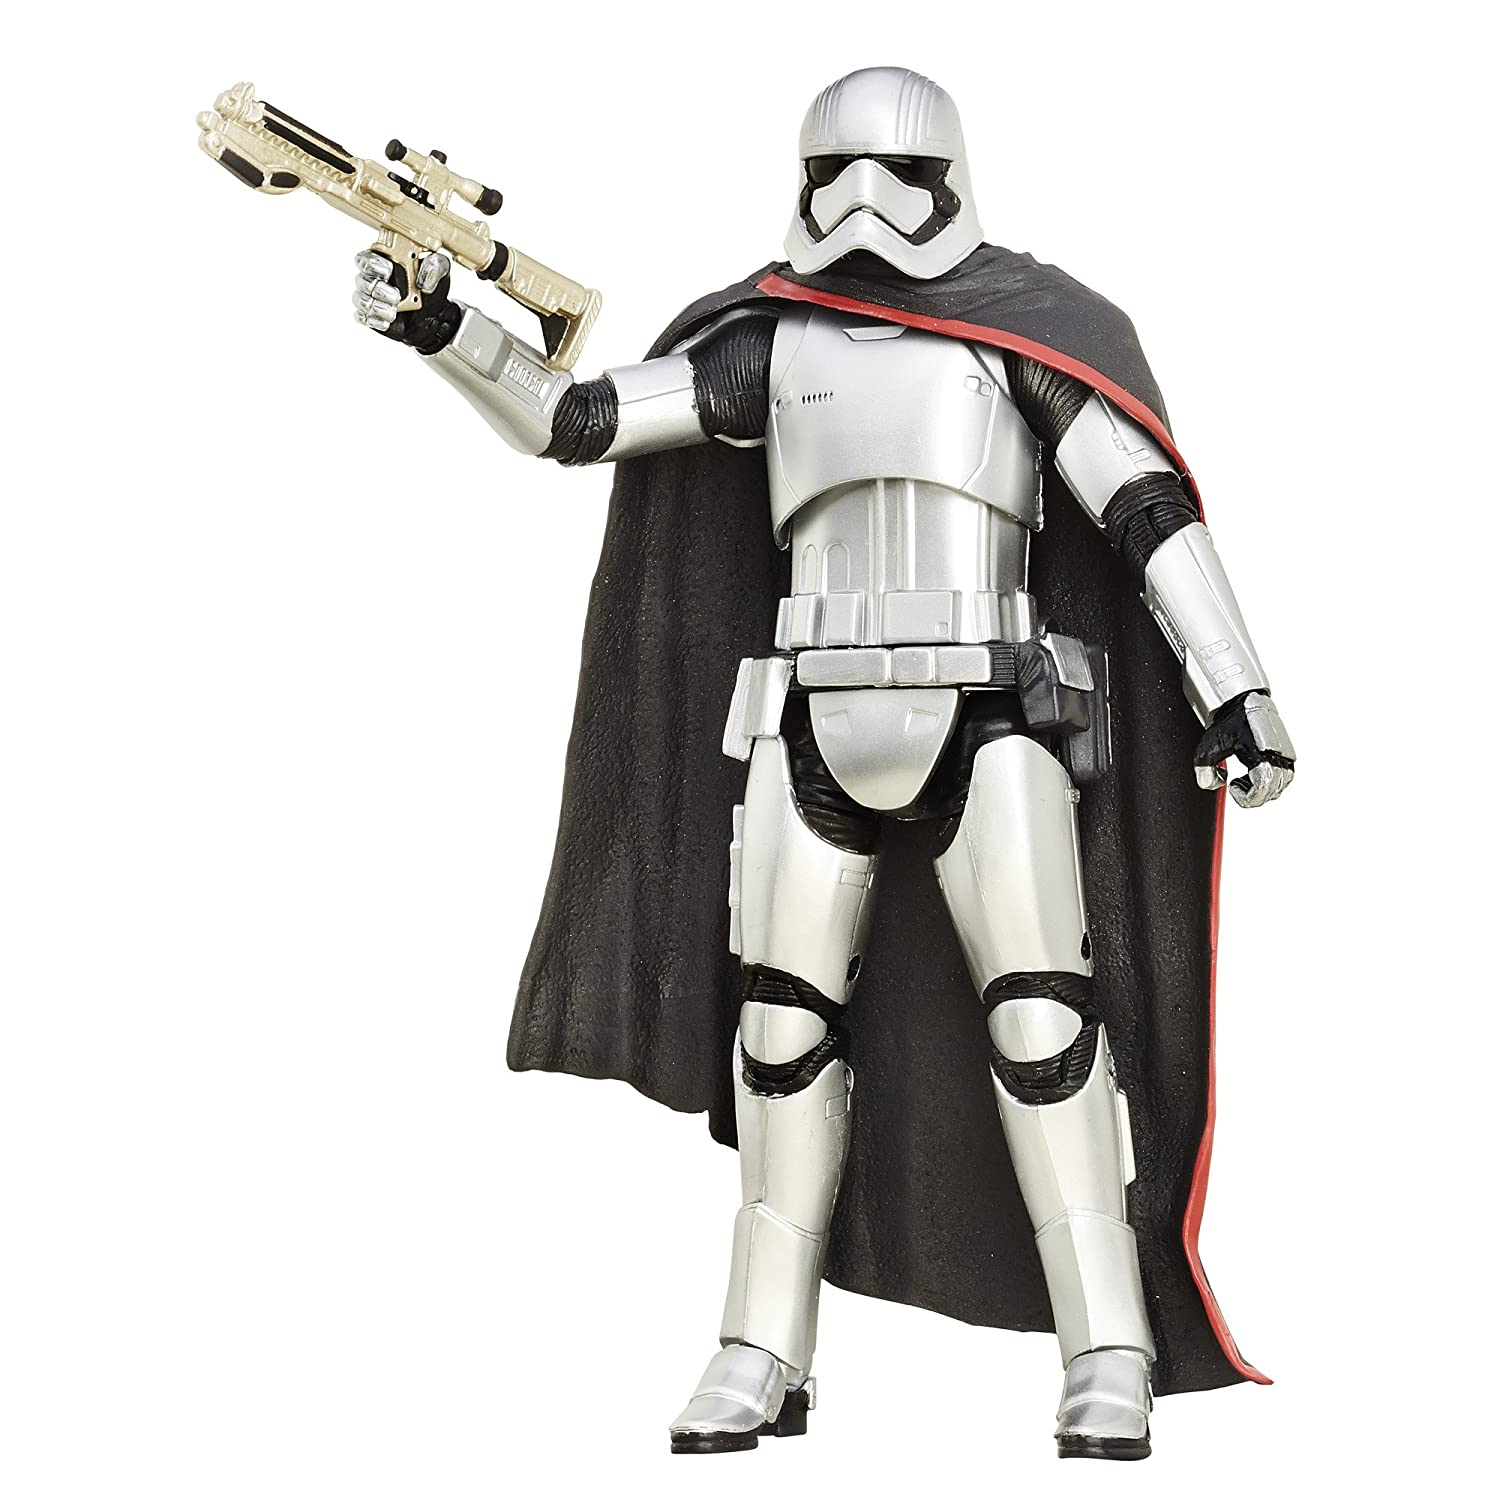 Amazon Star Wars Action Figures & Playsets Toys & Games